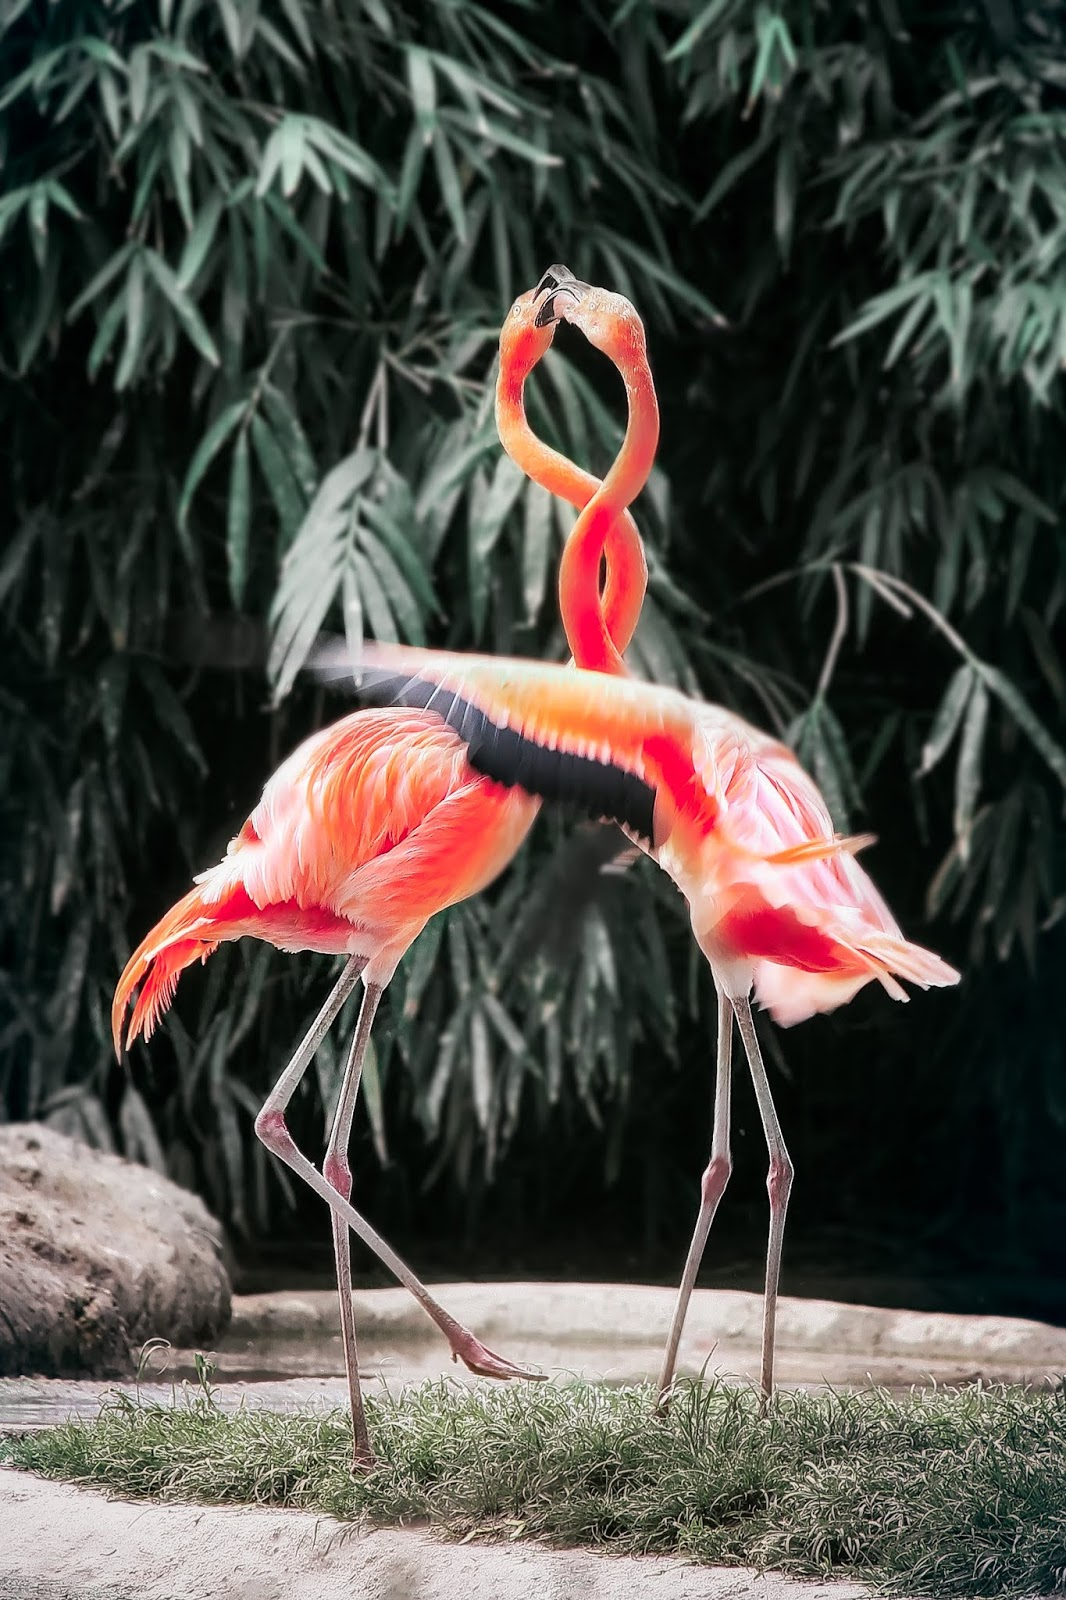 Flamingo one of the major orange beauty in world